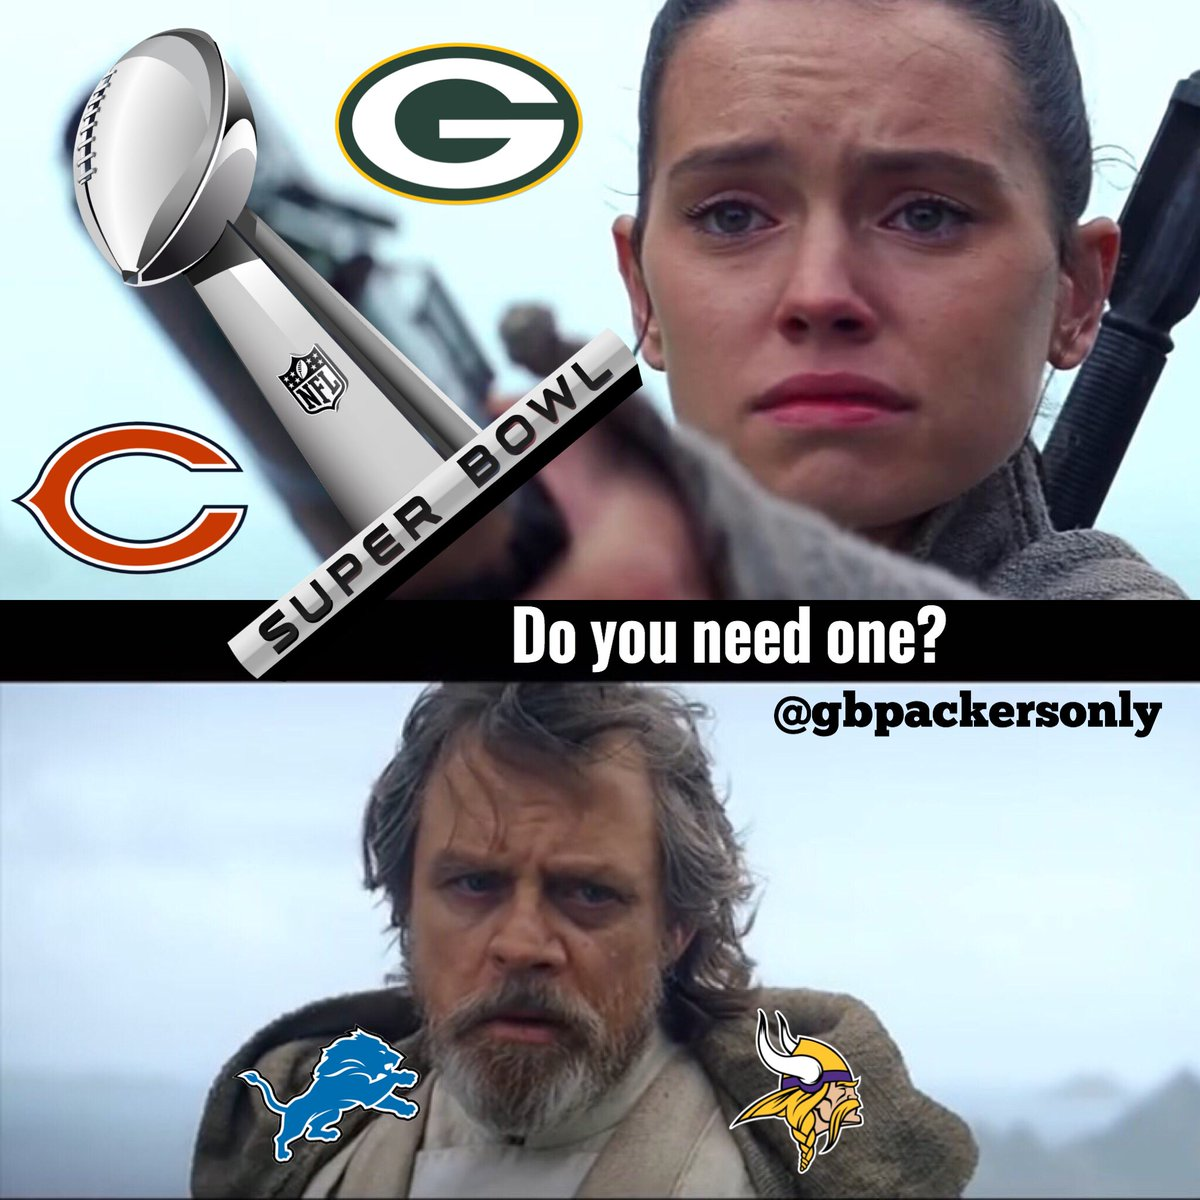 Nick On Twitter Maythefourthbewithyou Meme Nflmemes Packers Starwars Greenbaypackers Nfl Football Sports Memes Bears Vikings Lions Nfcnorth Https T Co Sh4whwzatc